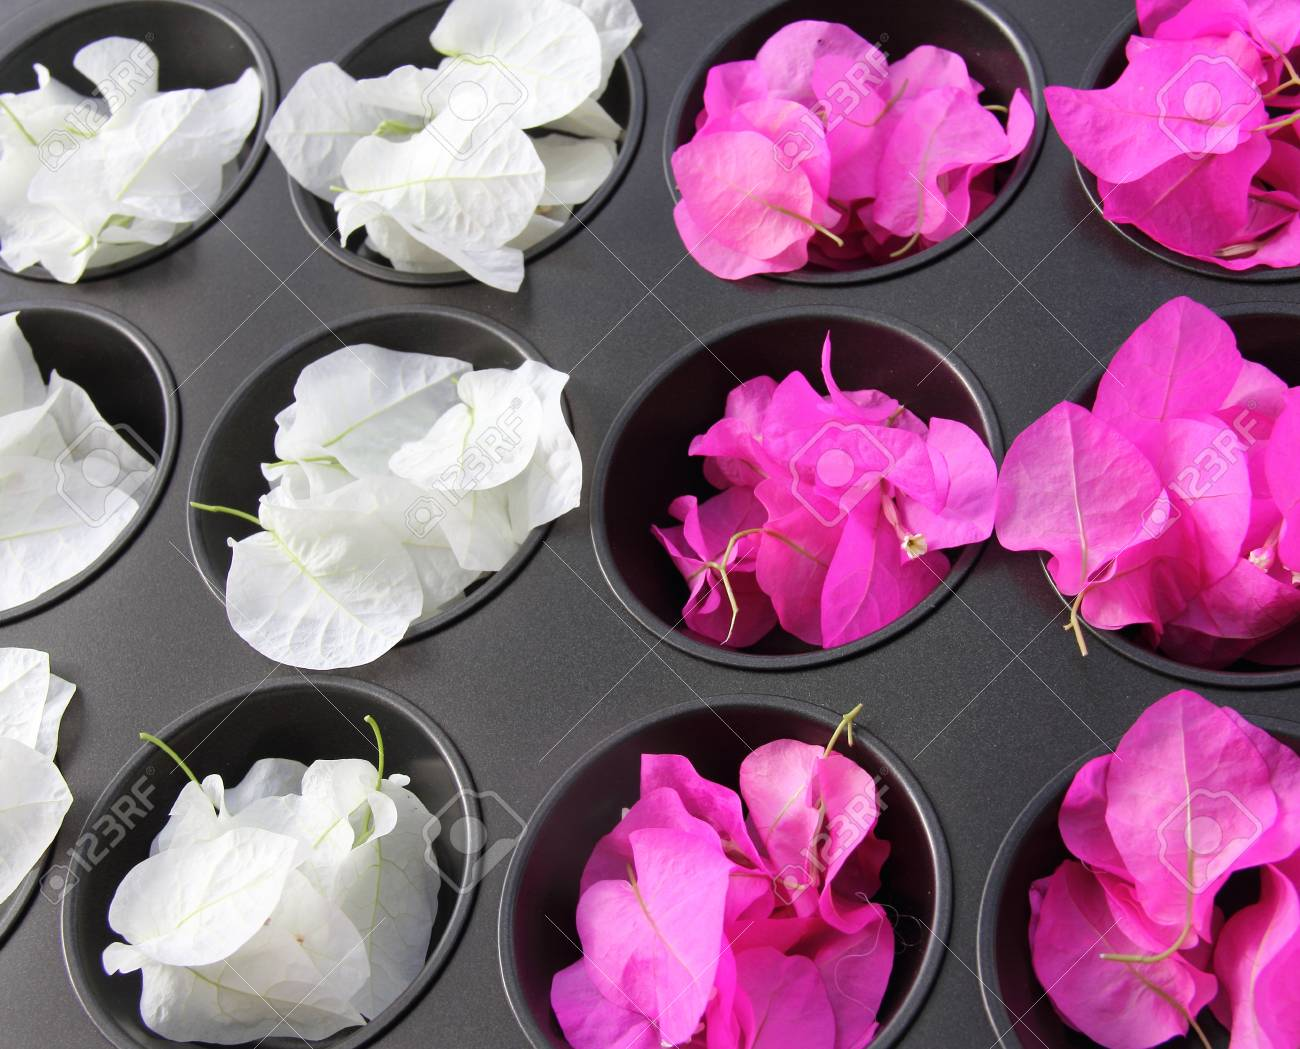 kitchenware with flowers Stock Photo - 12694719